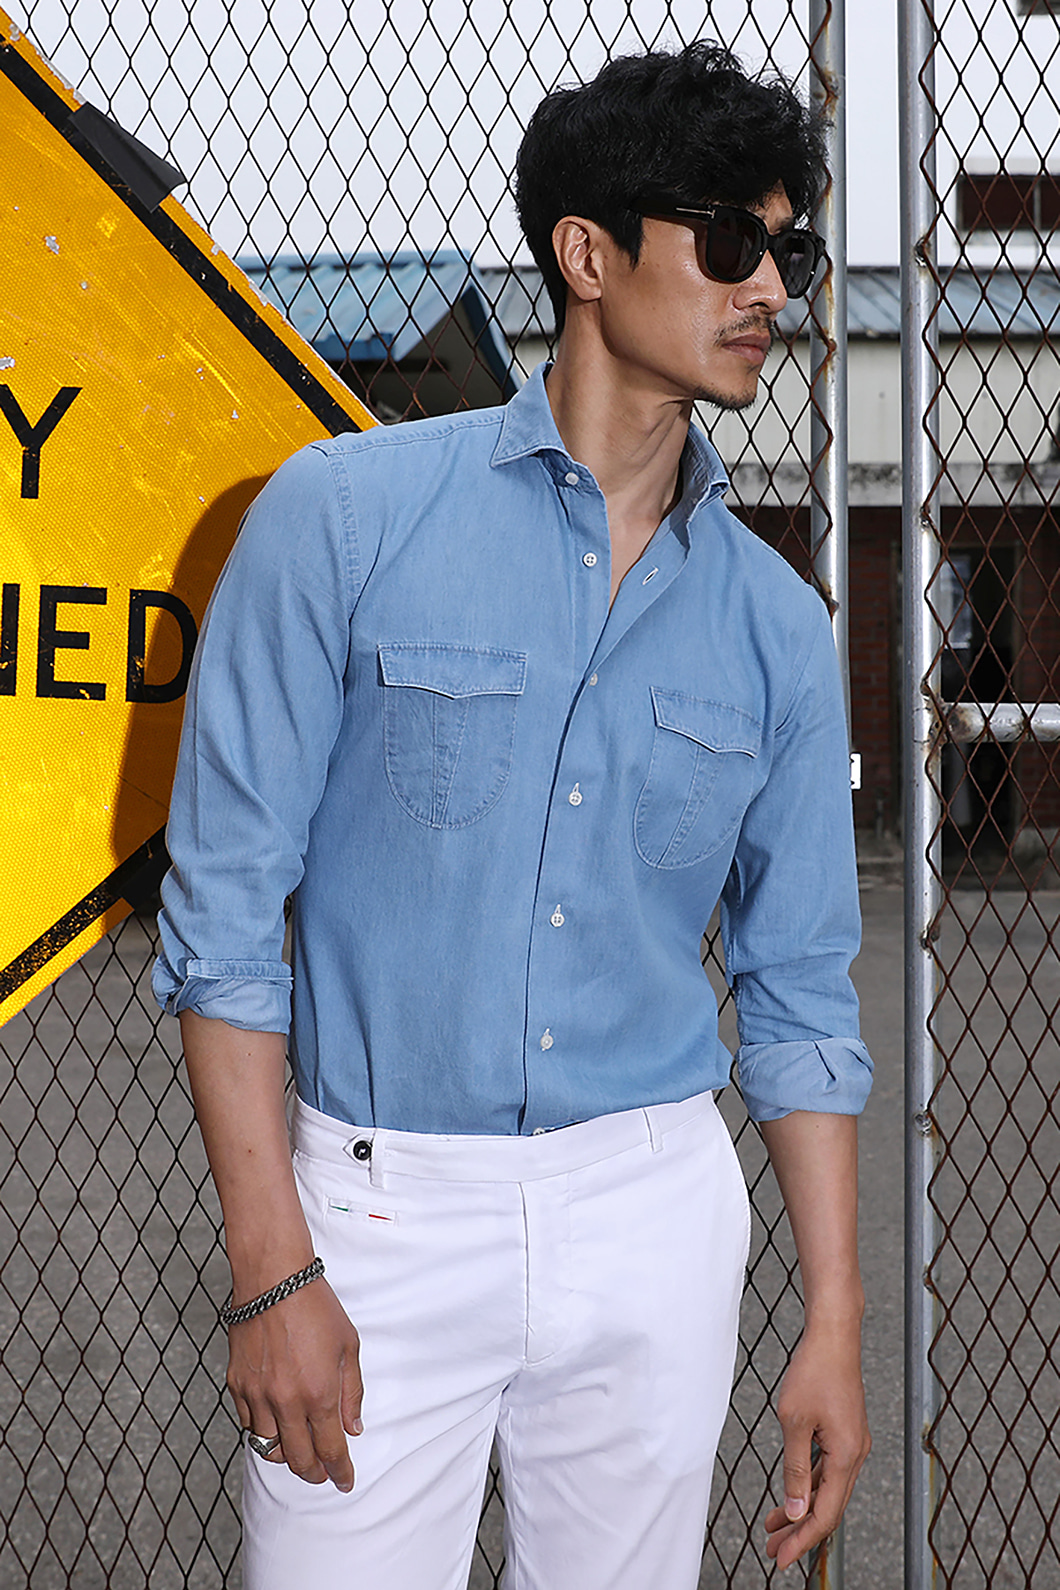 TAKE482 ITALIA A&C WASHED DENIM POCKET SHIRT-SKY BLUE품절임박-한정수량 20% SALE! ~8월31일까지